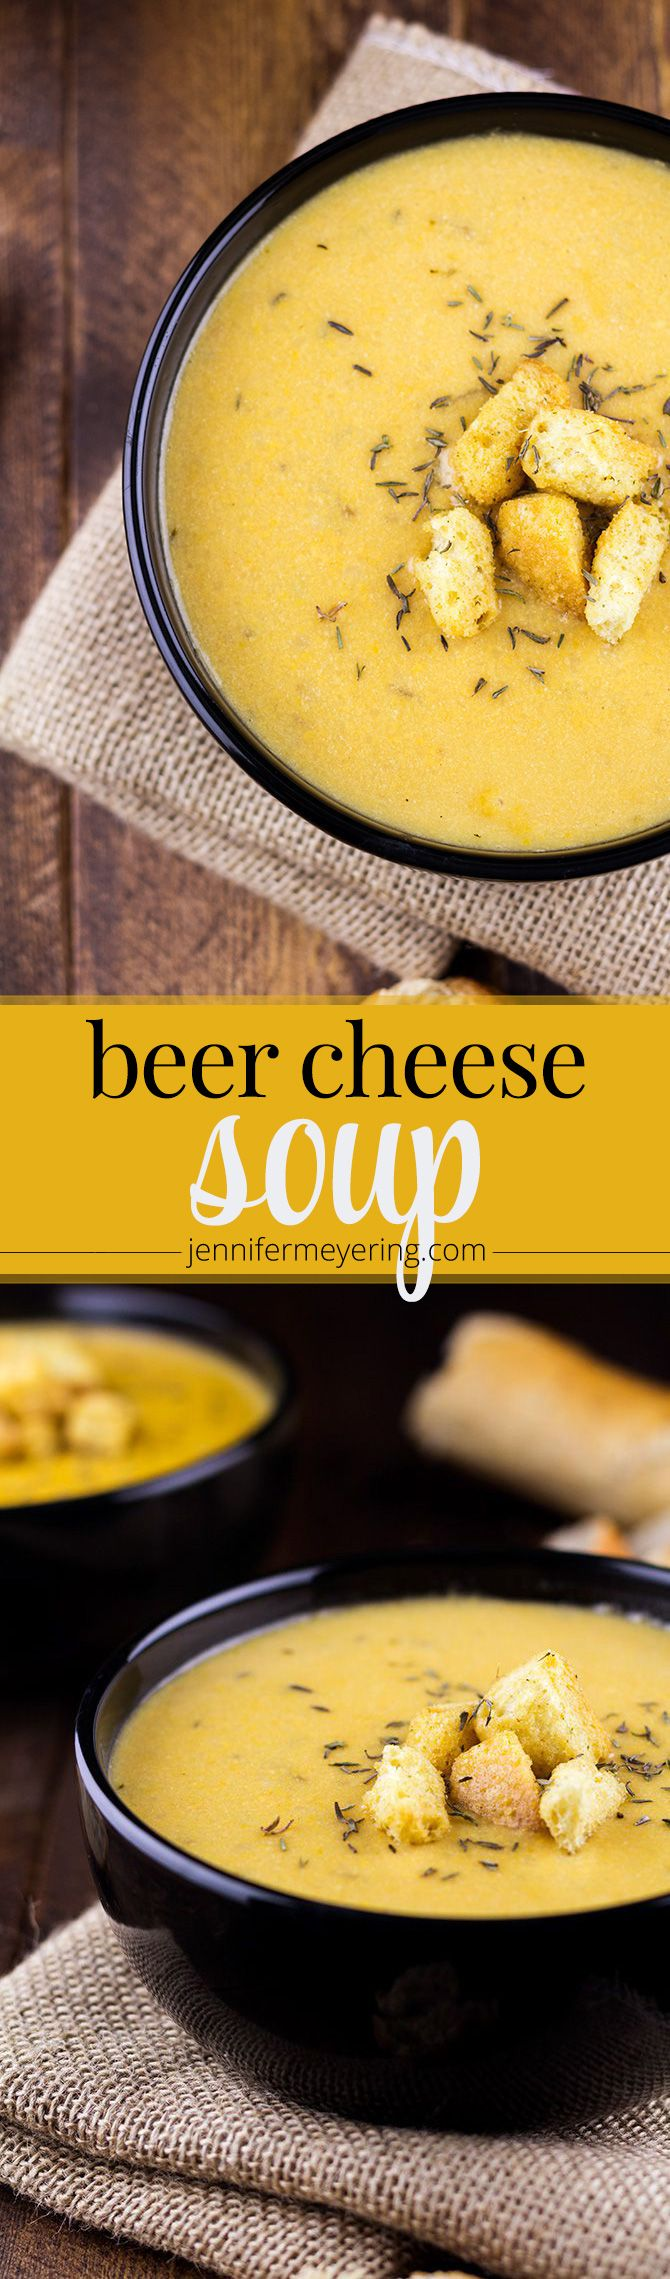 Beer Cheese Soup - JenniferMeyering.com